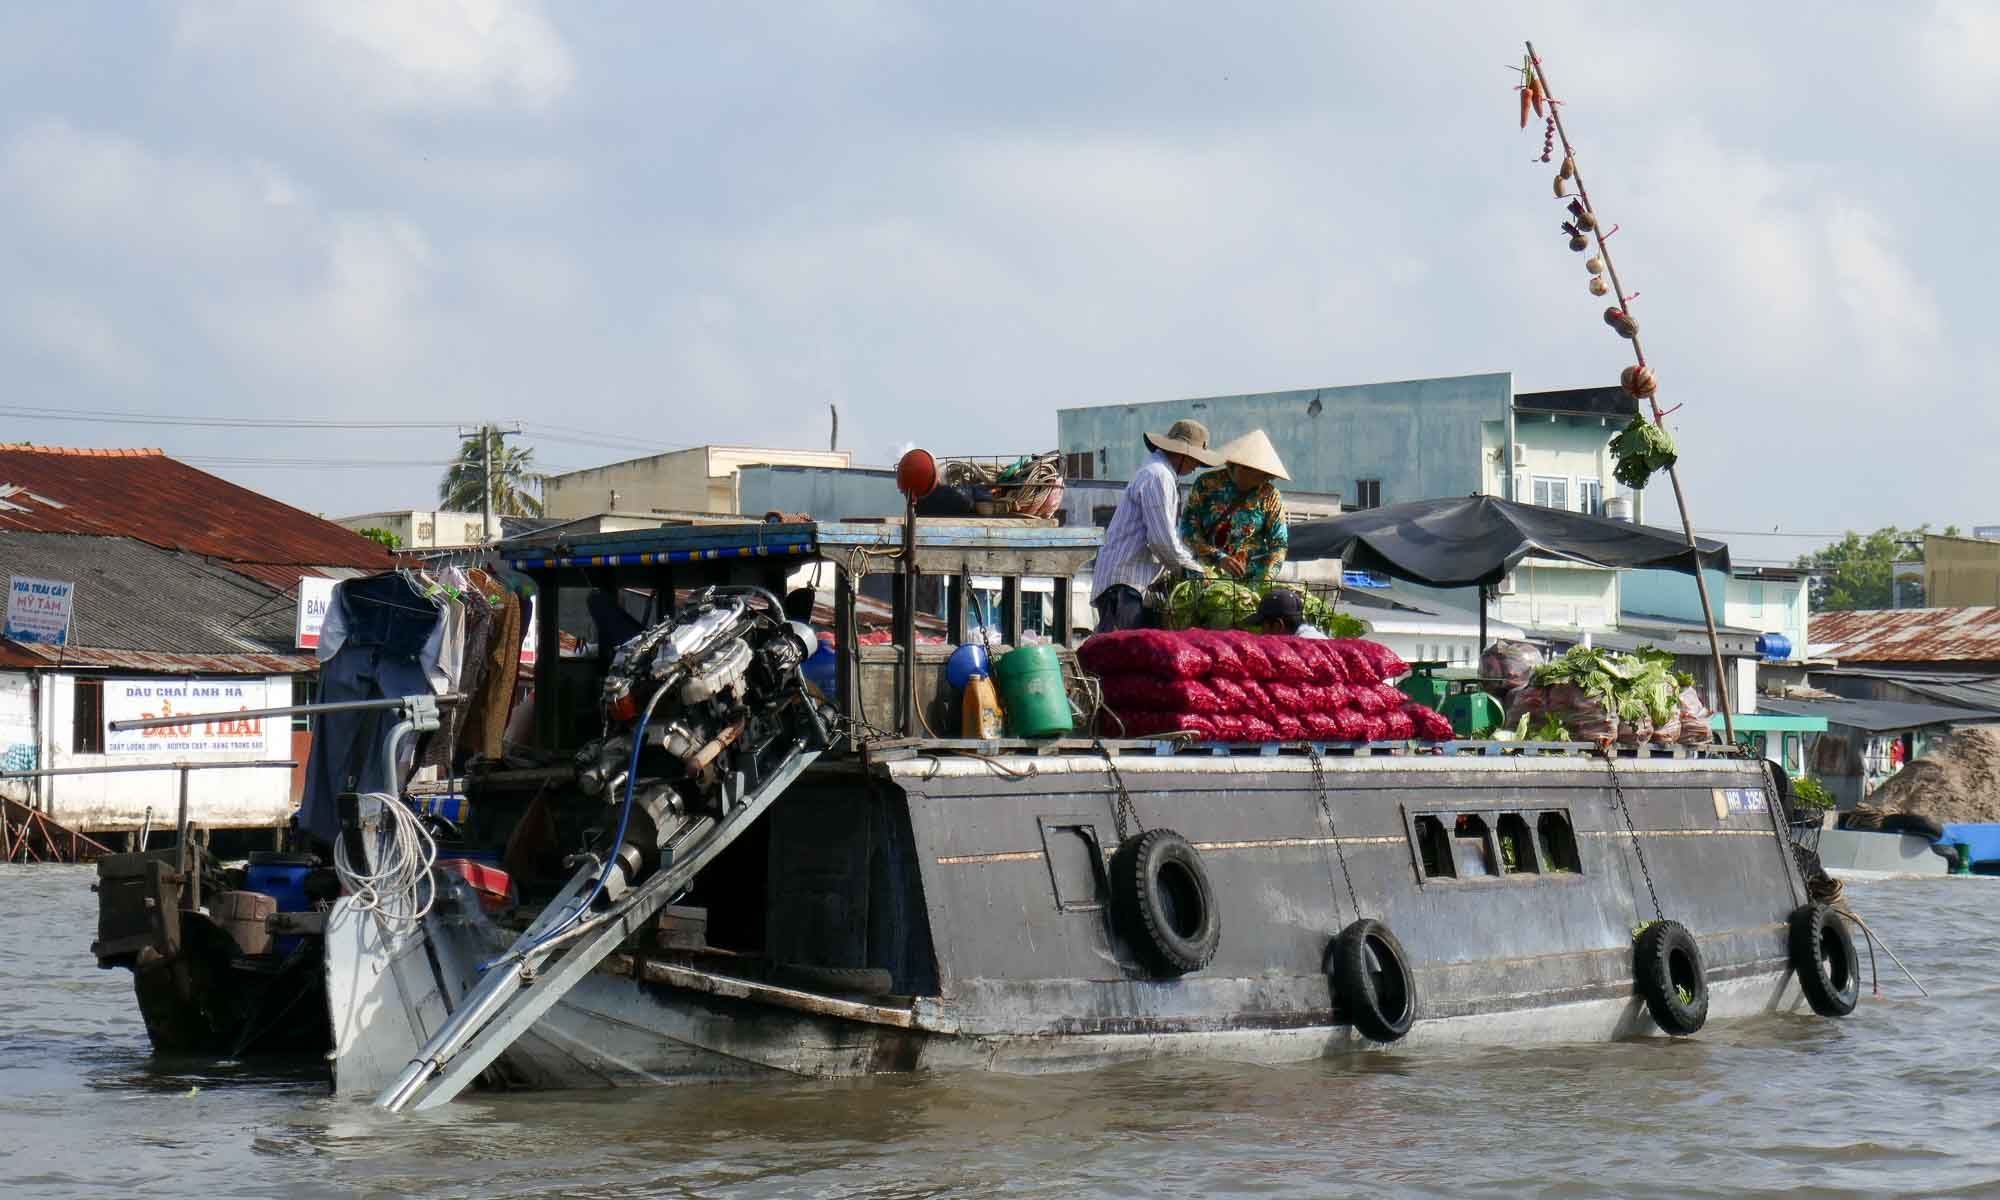 As can be seen by the samples on the pole, this boat sells a variety of produce